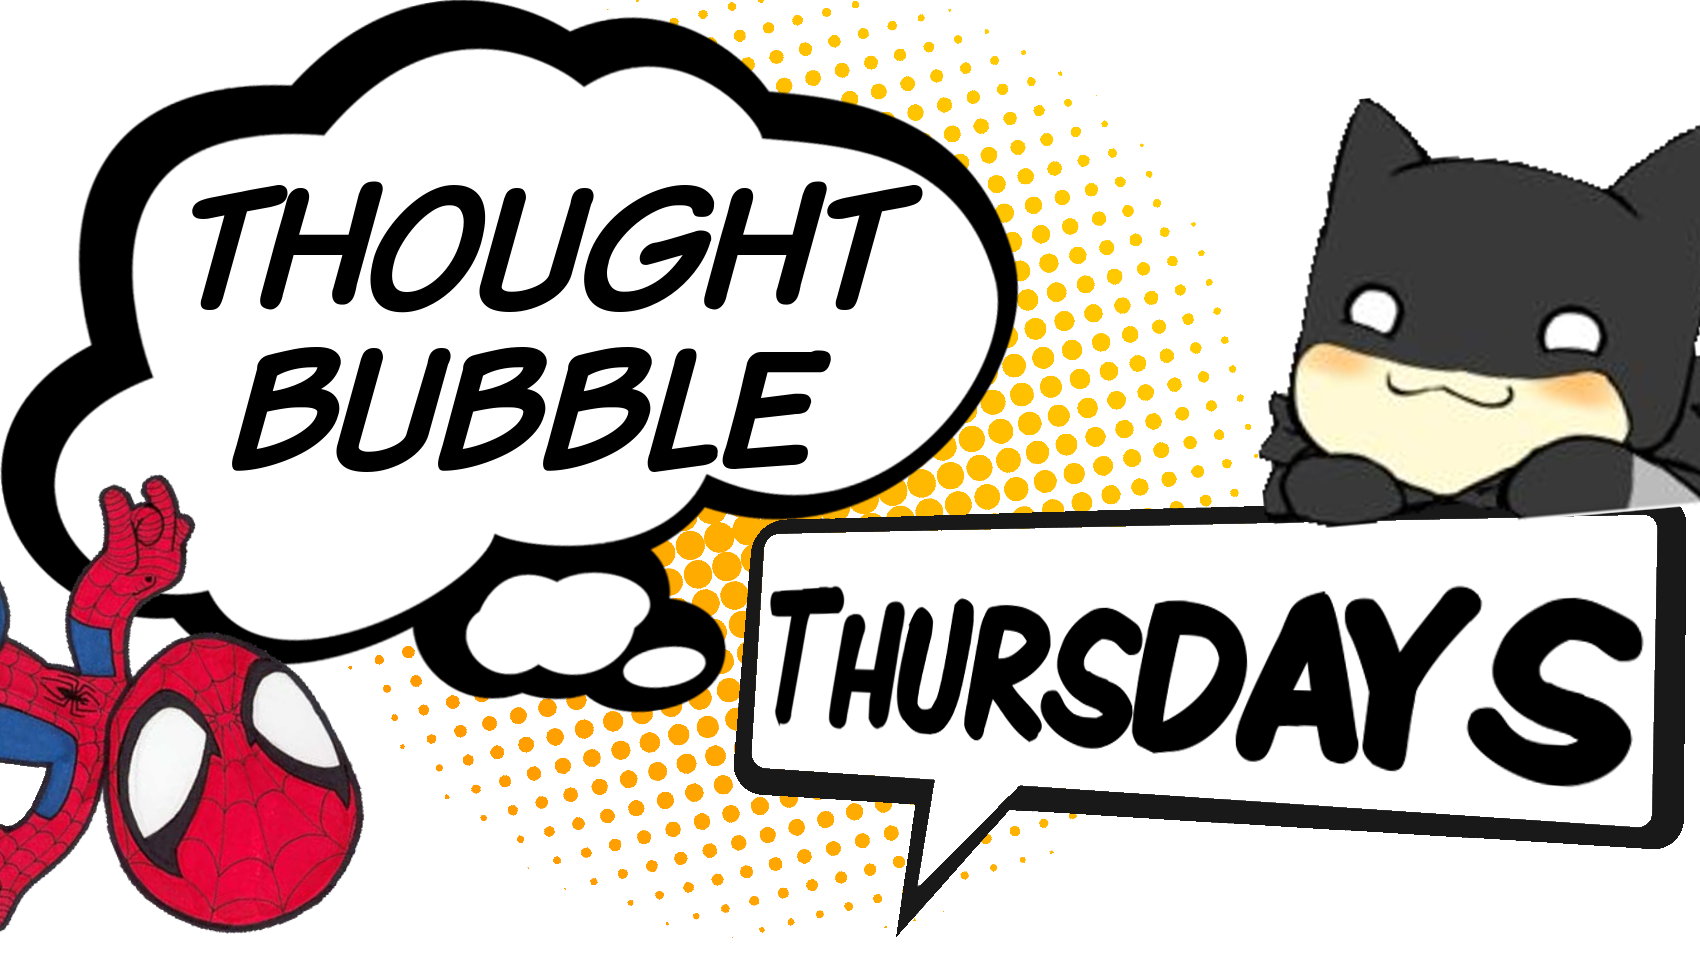 Einstein clipart thinking. Thought bubble thursdays assembling